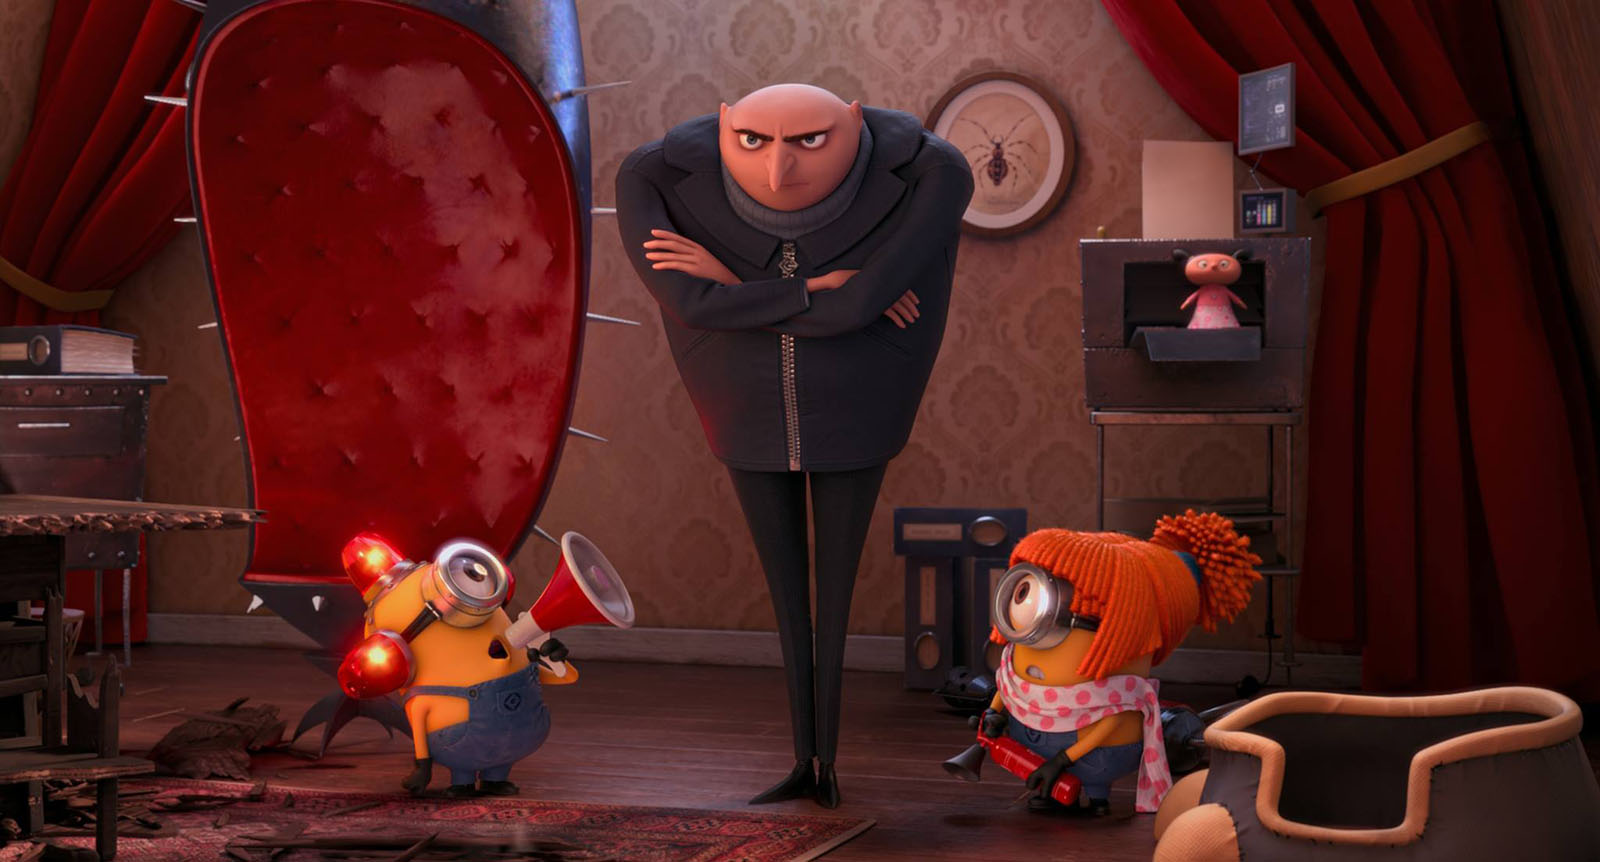 despicable me 2 animation movie